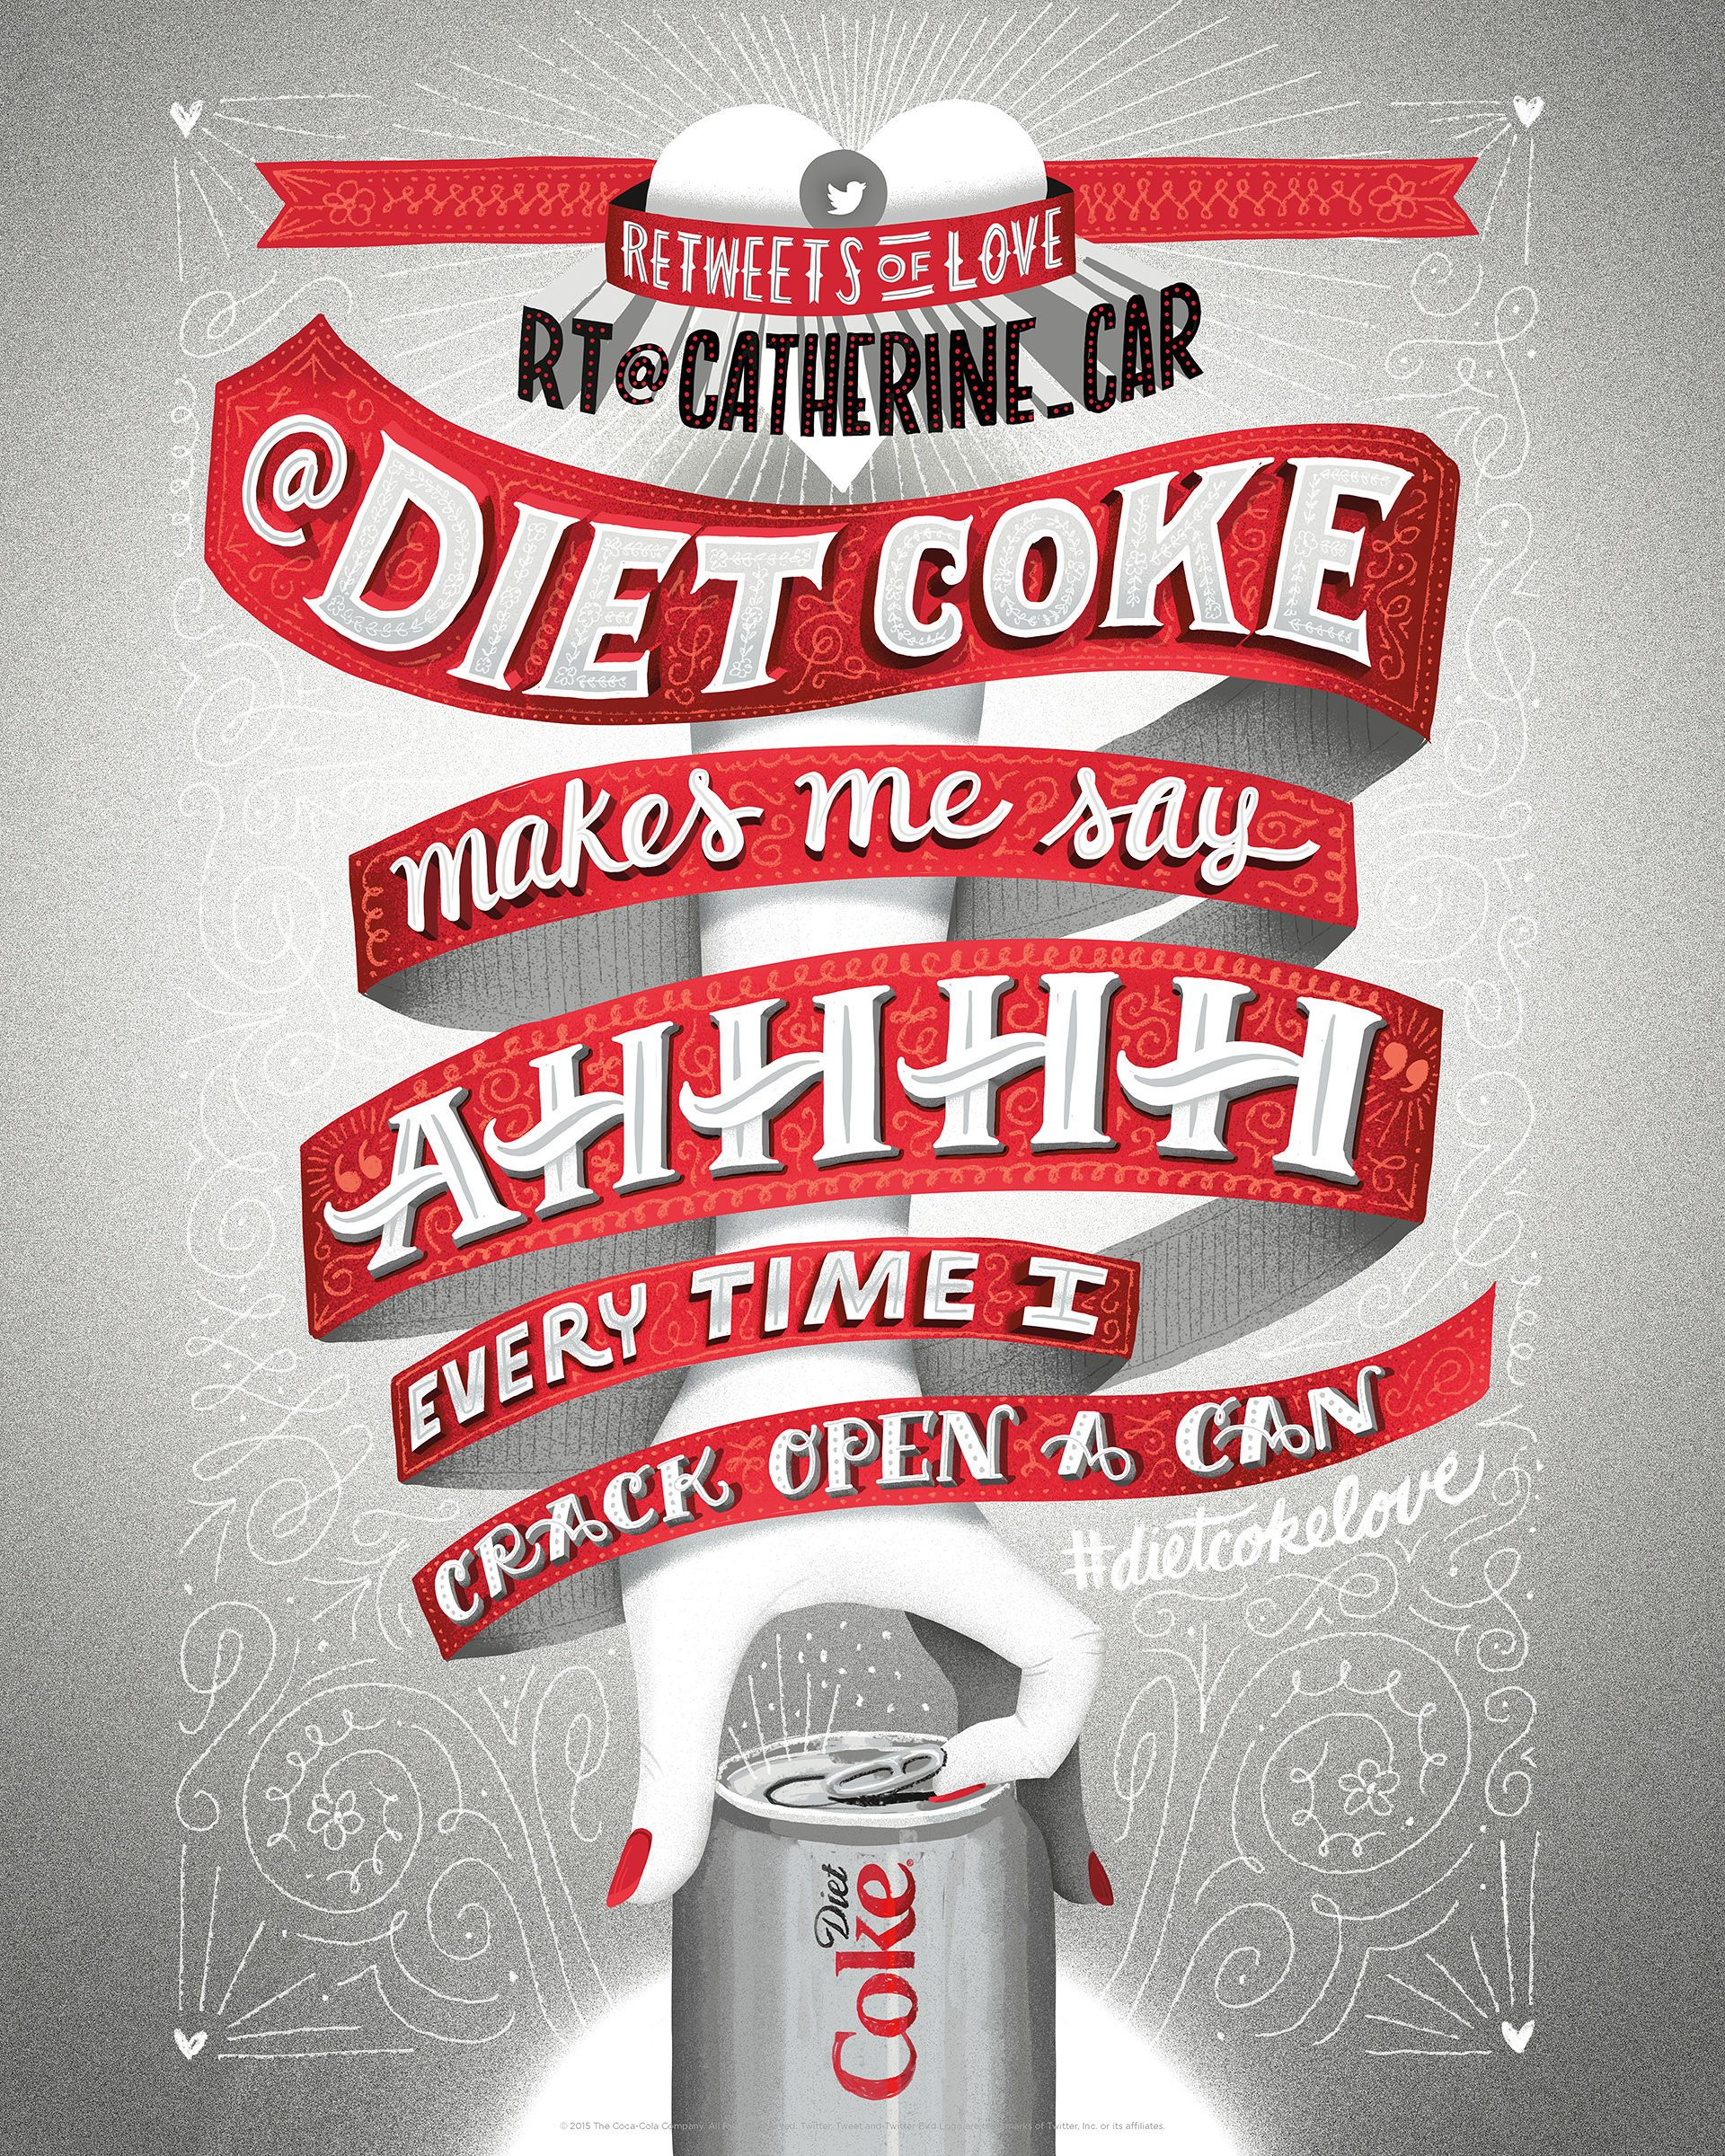 D ad poster design - Diet Coke Retweets Of Love Coca Cola Retweets Advertising Poster Illustration Design Award